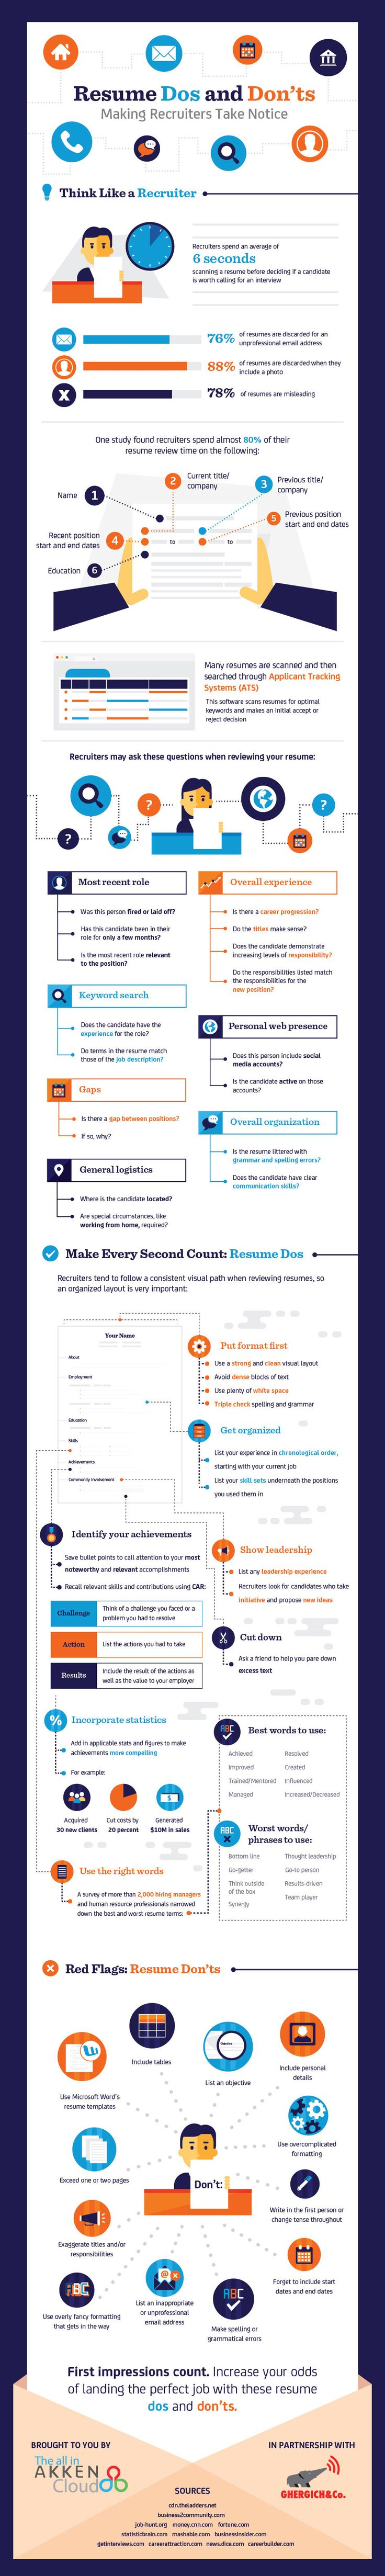 Smart Resume Wizard 9 Best Resume Images On Pinterest  Resume Creative Curriculum And .